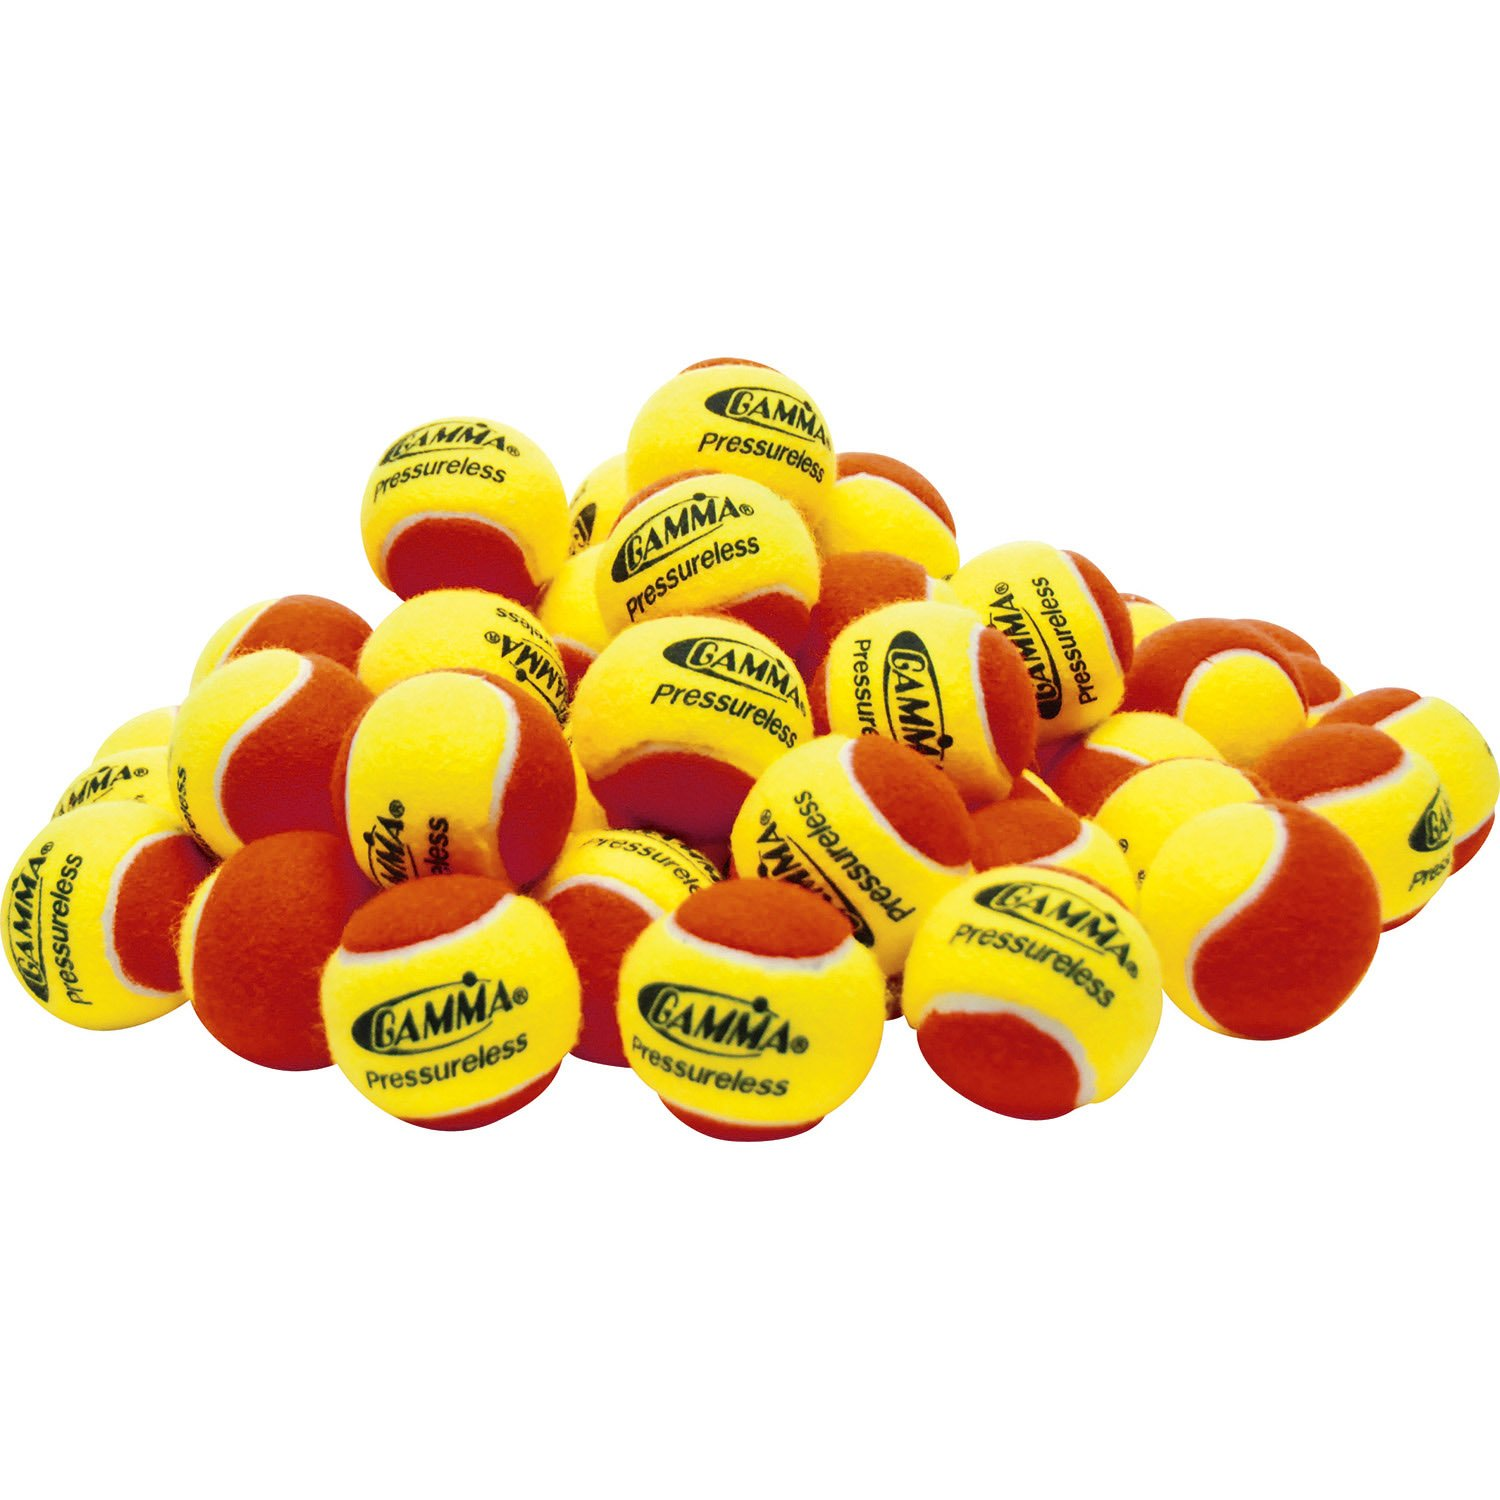 Gamma Sports Pressureless Practice Tennis Balls, Yellow/Red - Pack of 60